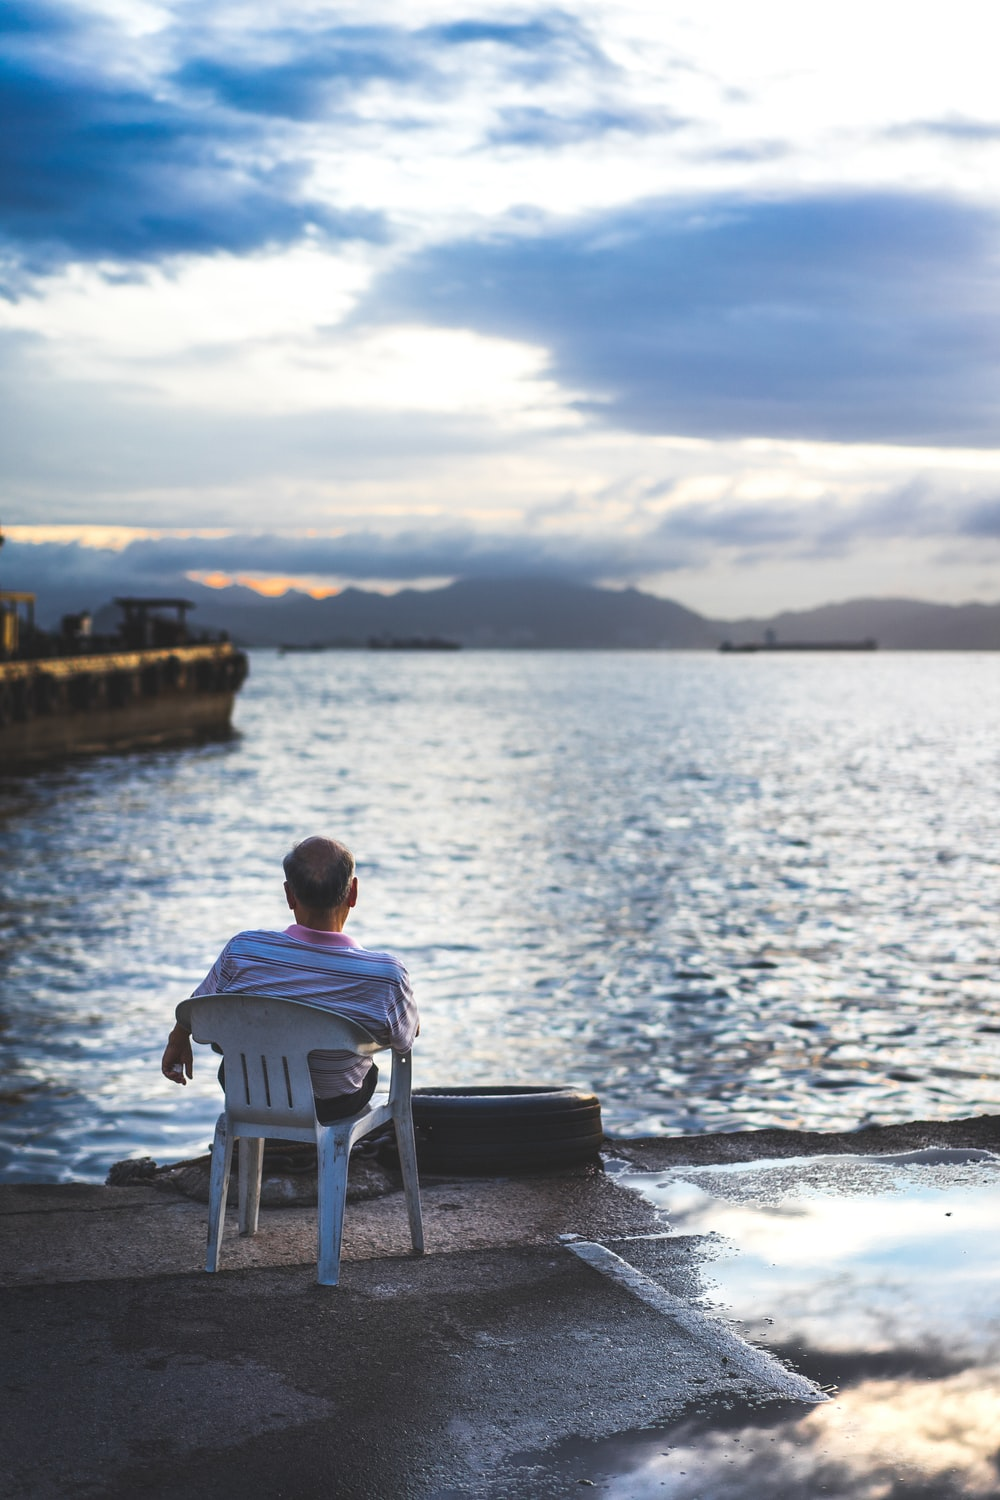 man in white shirt sitting on white plastic chair near body of water during daytime